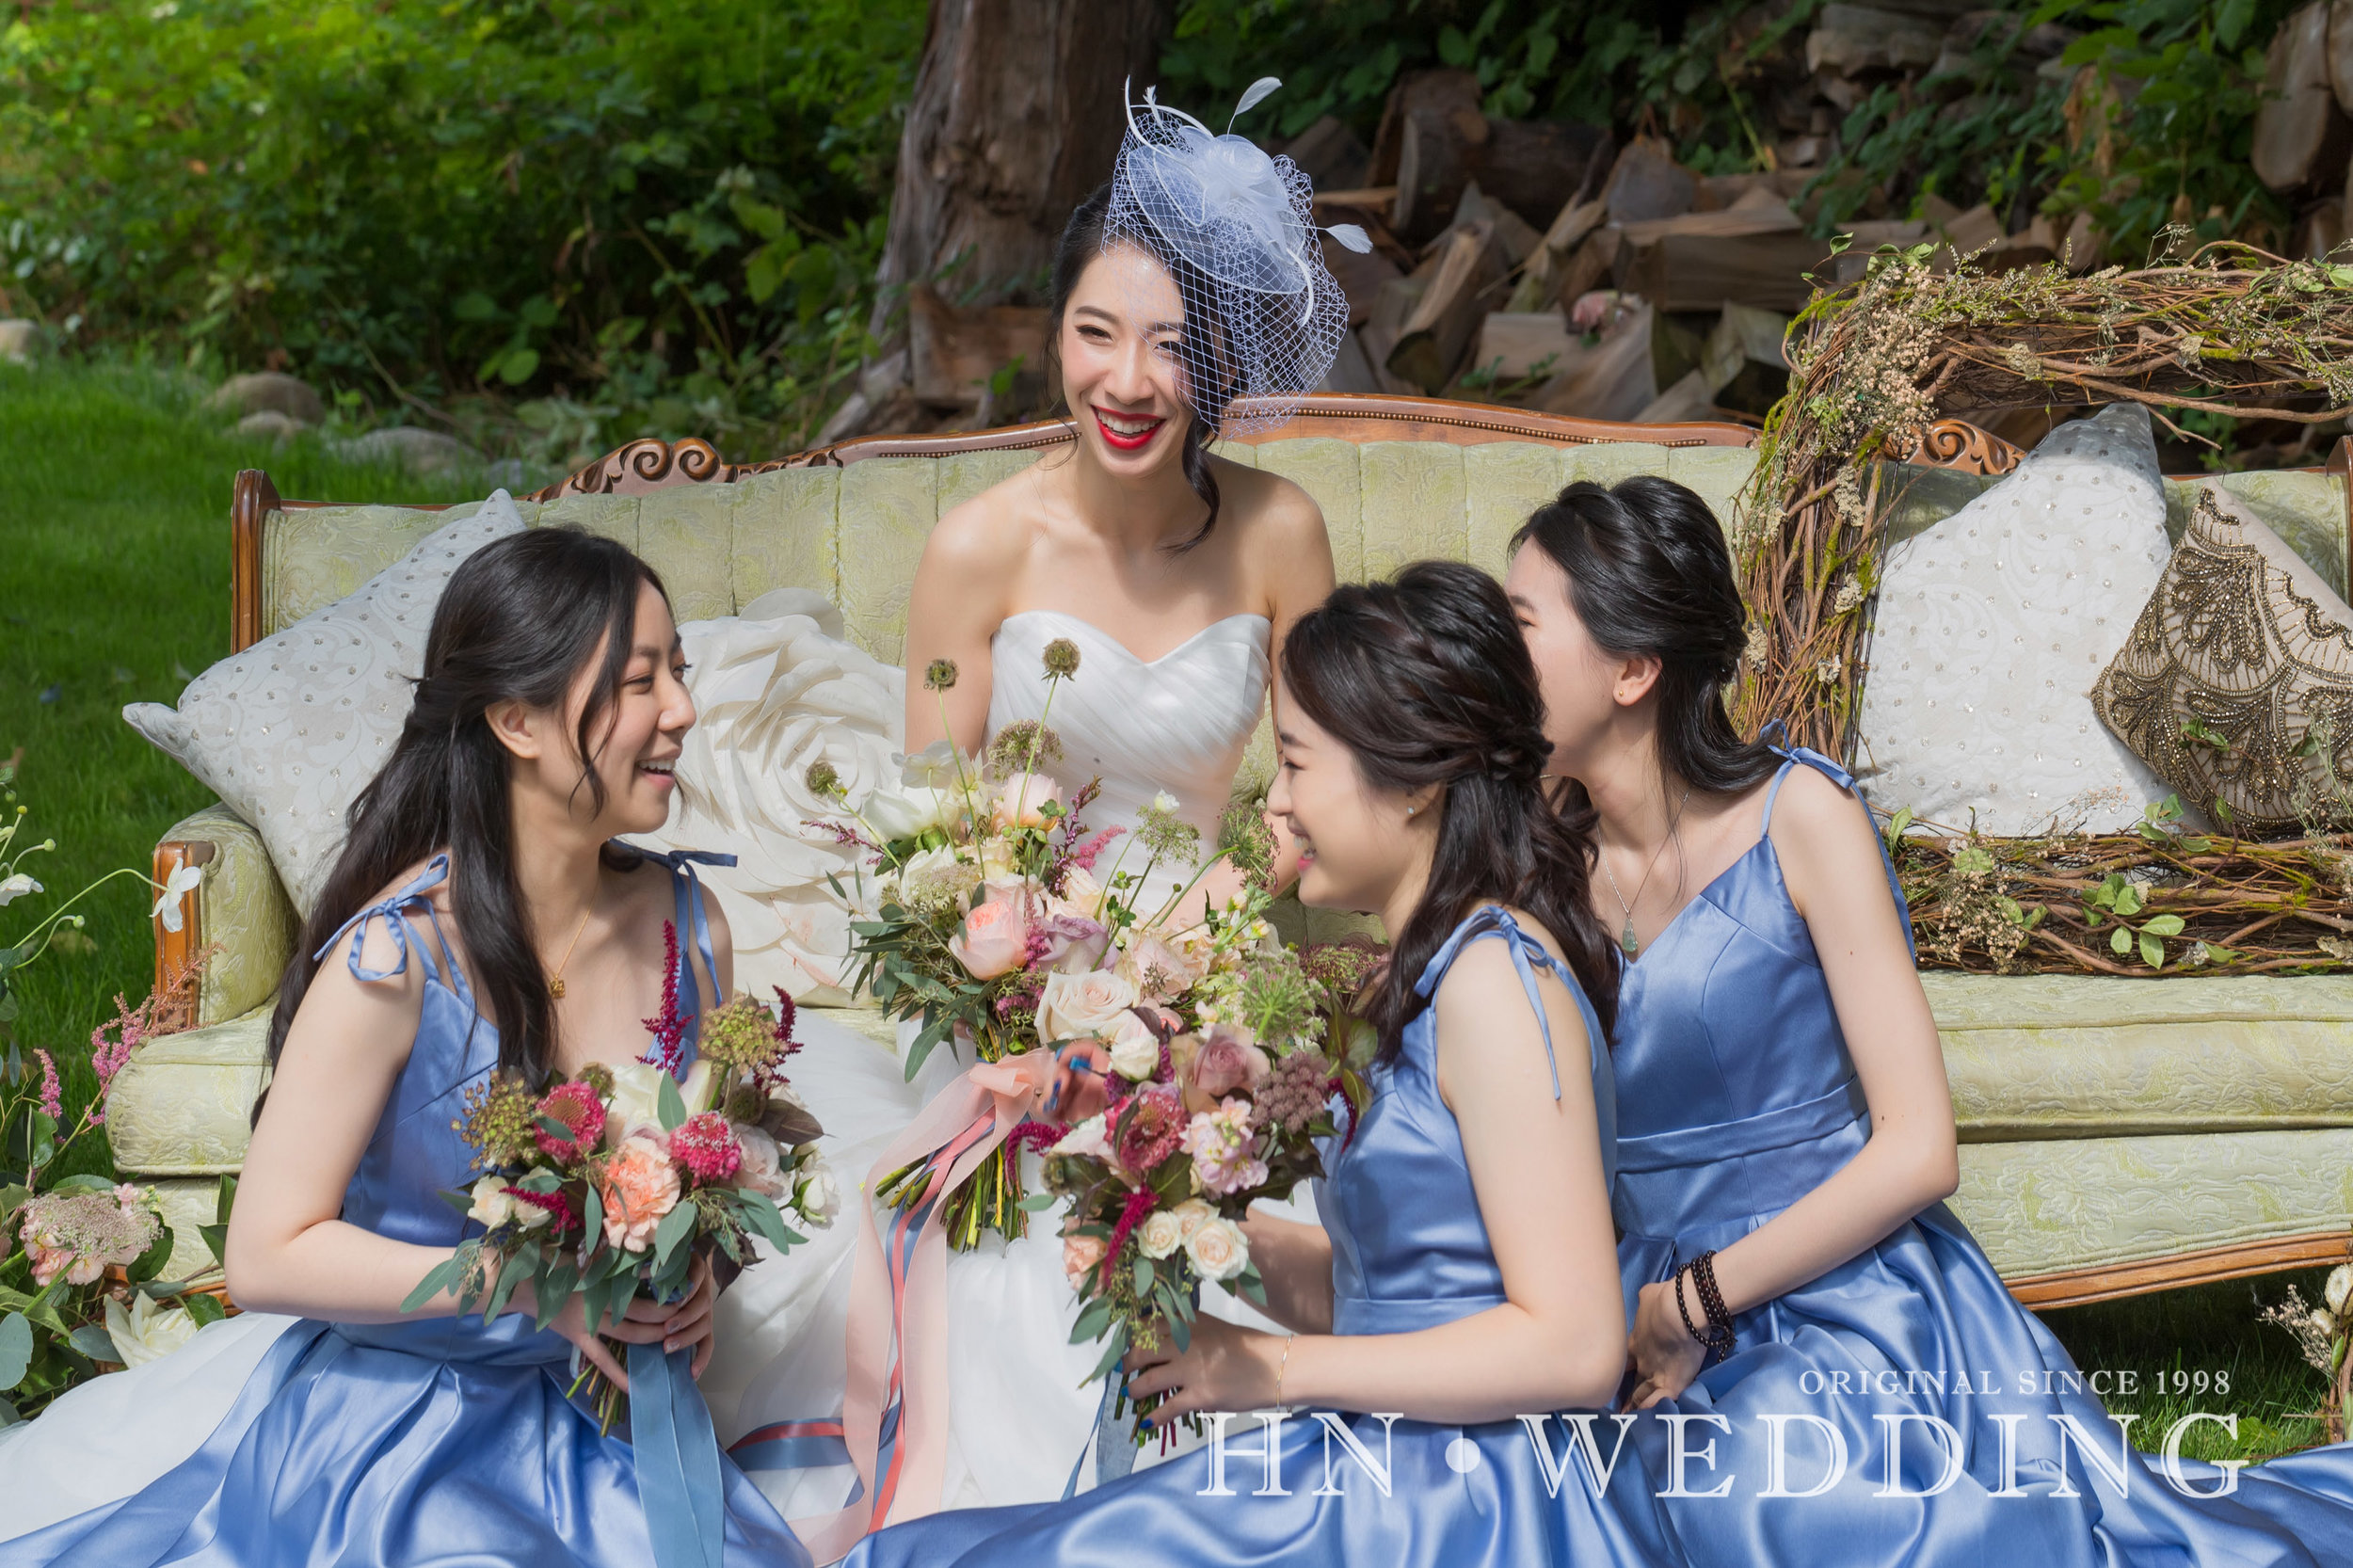 hnweddingweddingday20180830-89.jpg